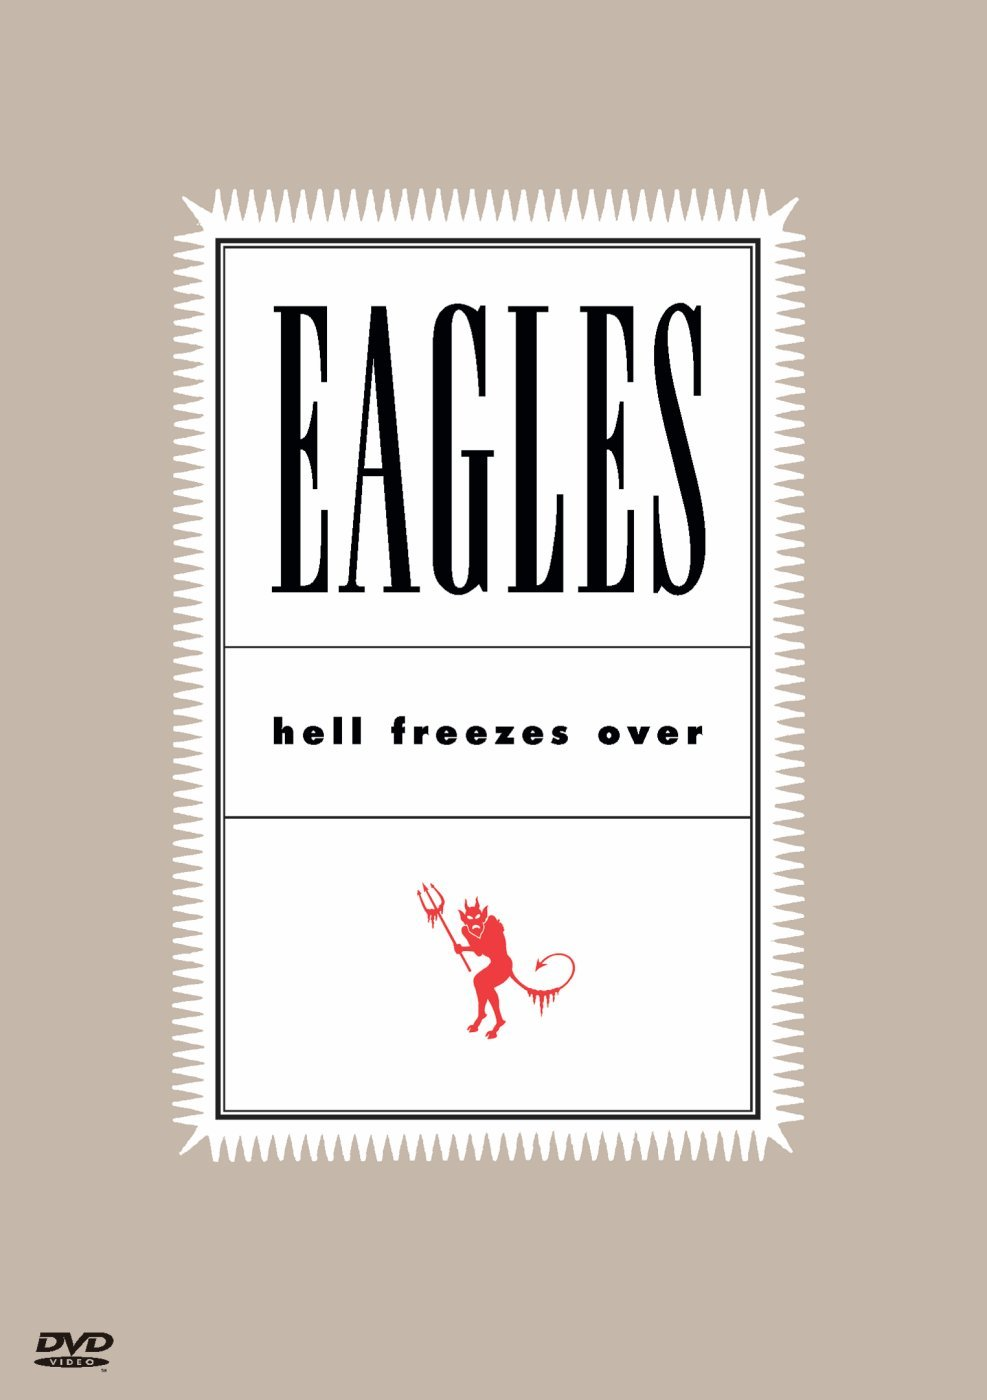 The Cheap mail order shopping Eagles - Many popular brands Freezes Hell Over